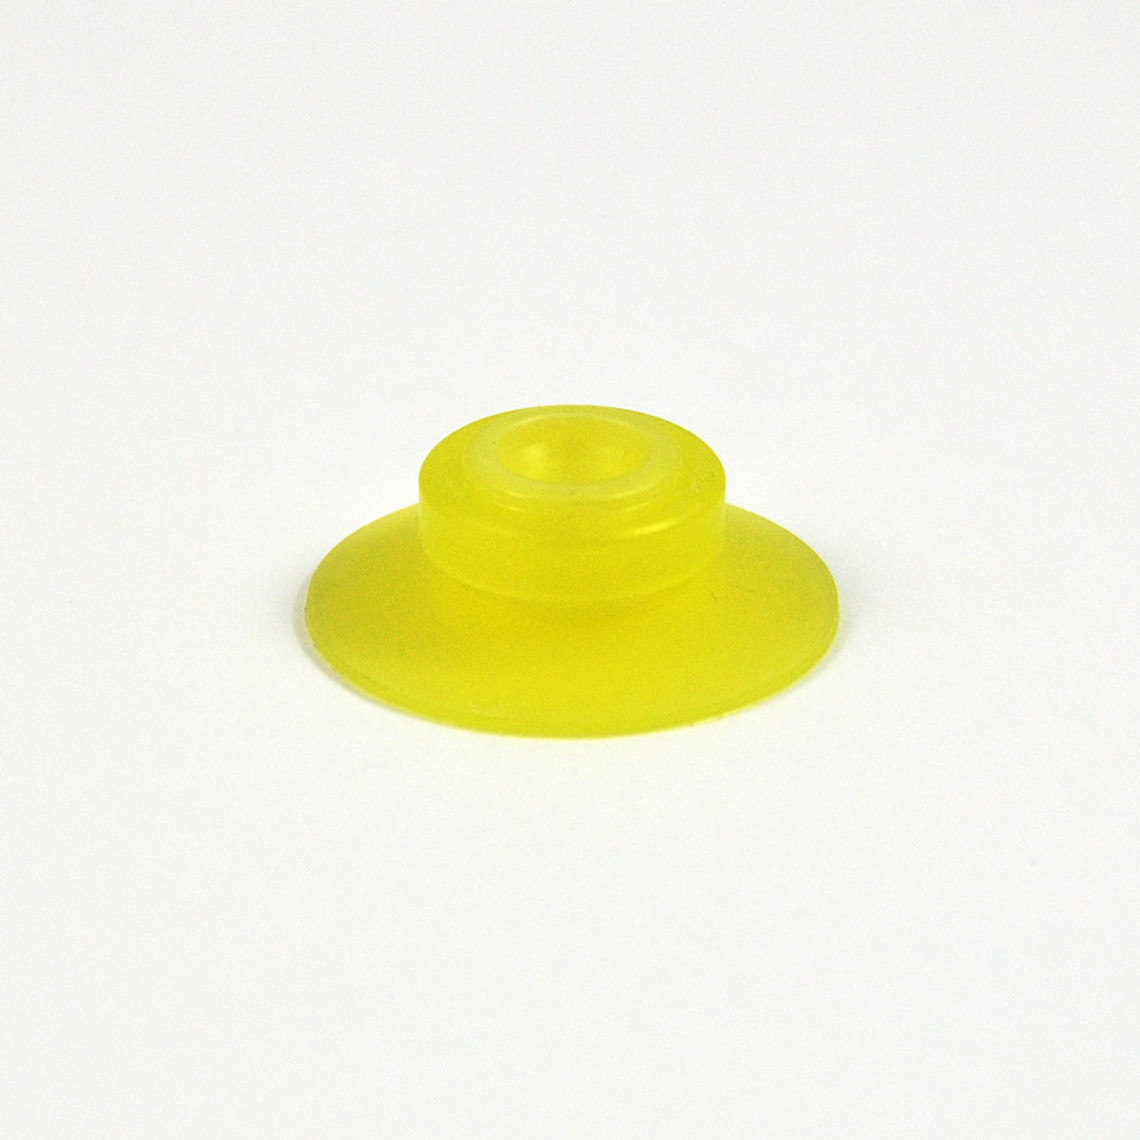 The yellow medium valve works with most smooth sauces such as ketchup, mustard  and mayo